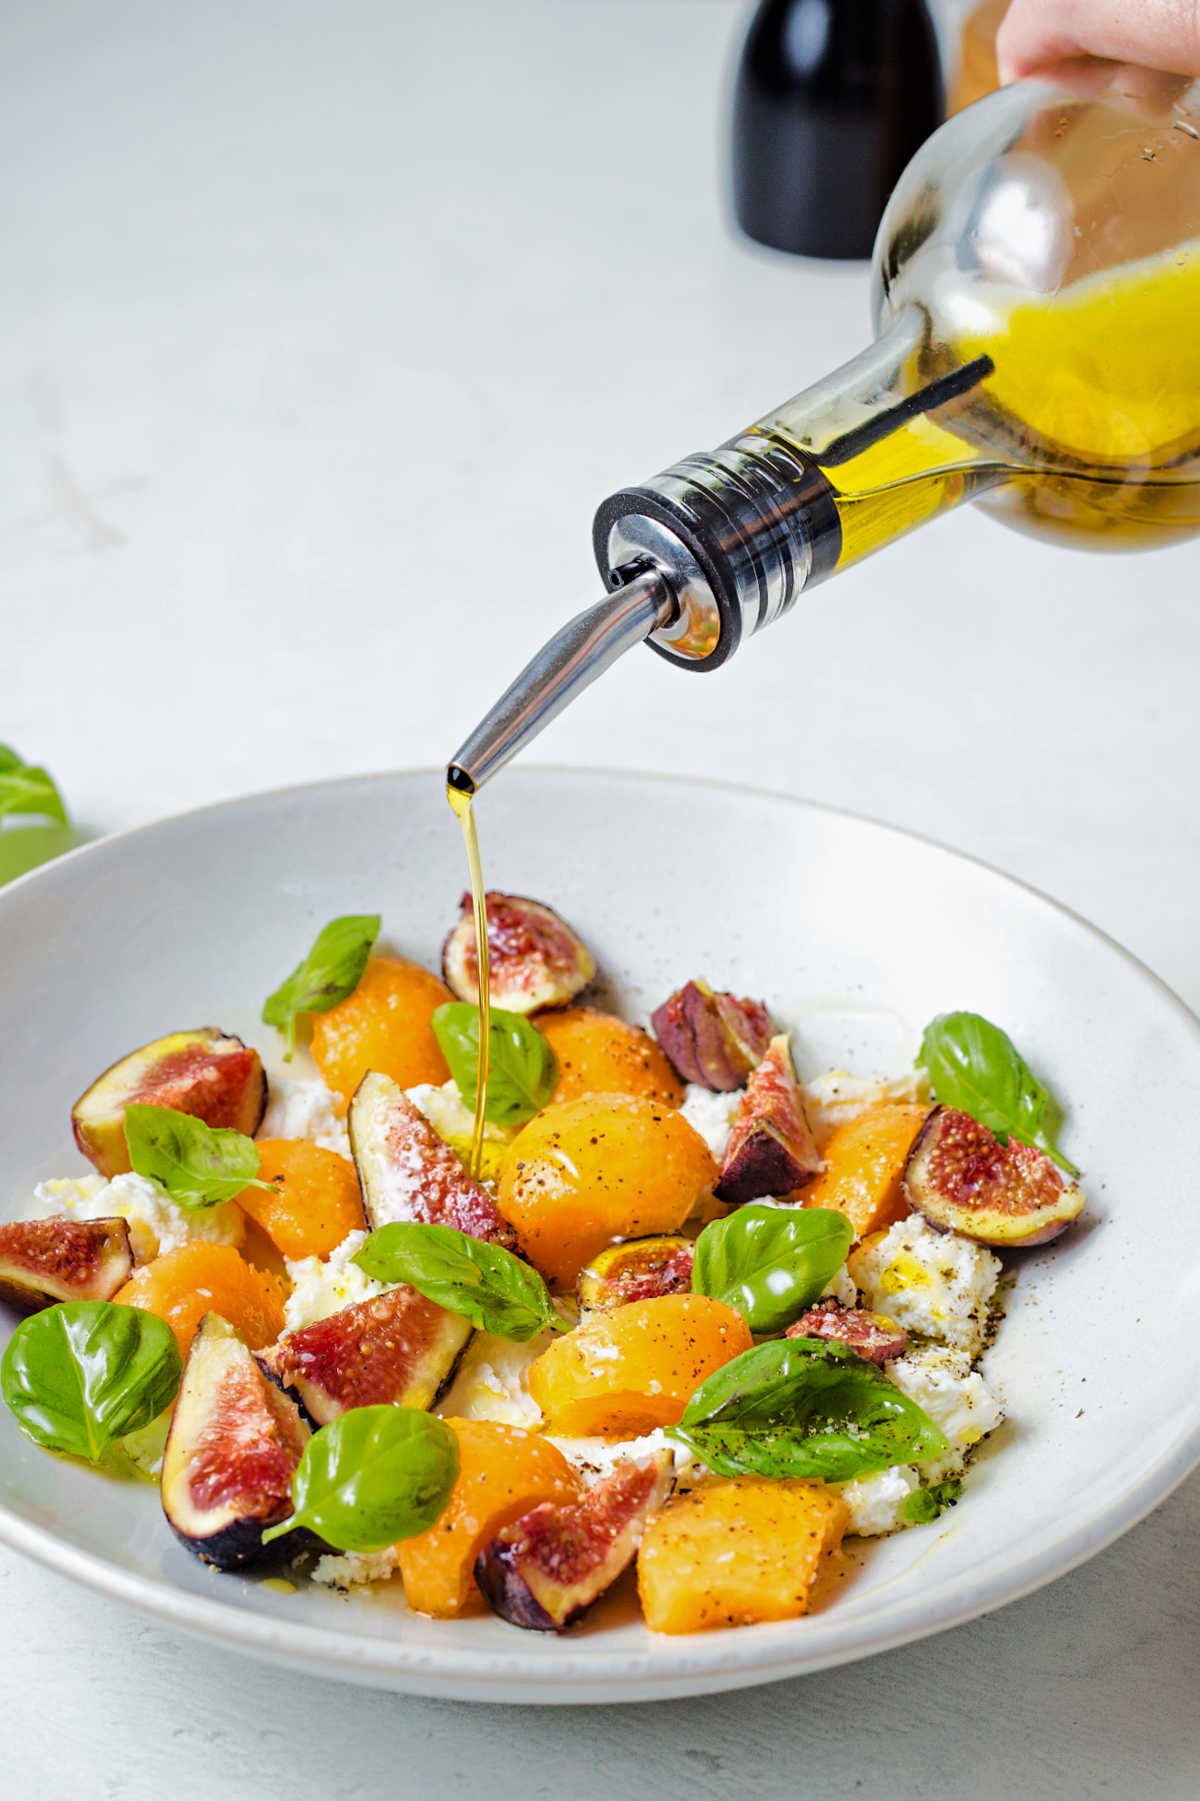 drizzling olive oil into a bowl of fig salad.